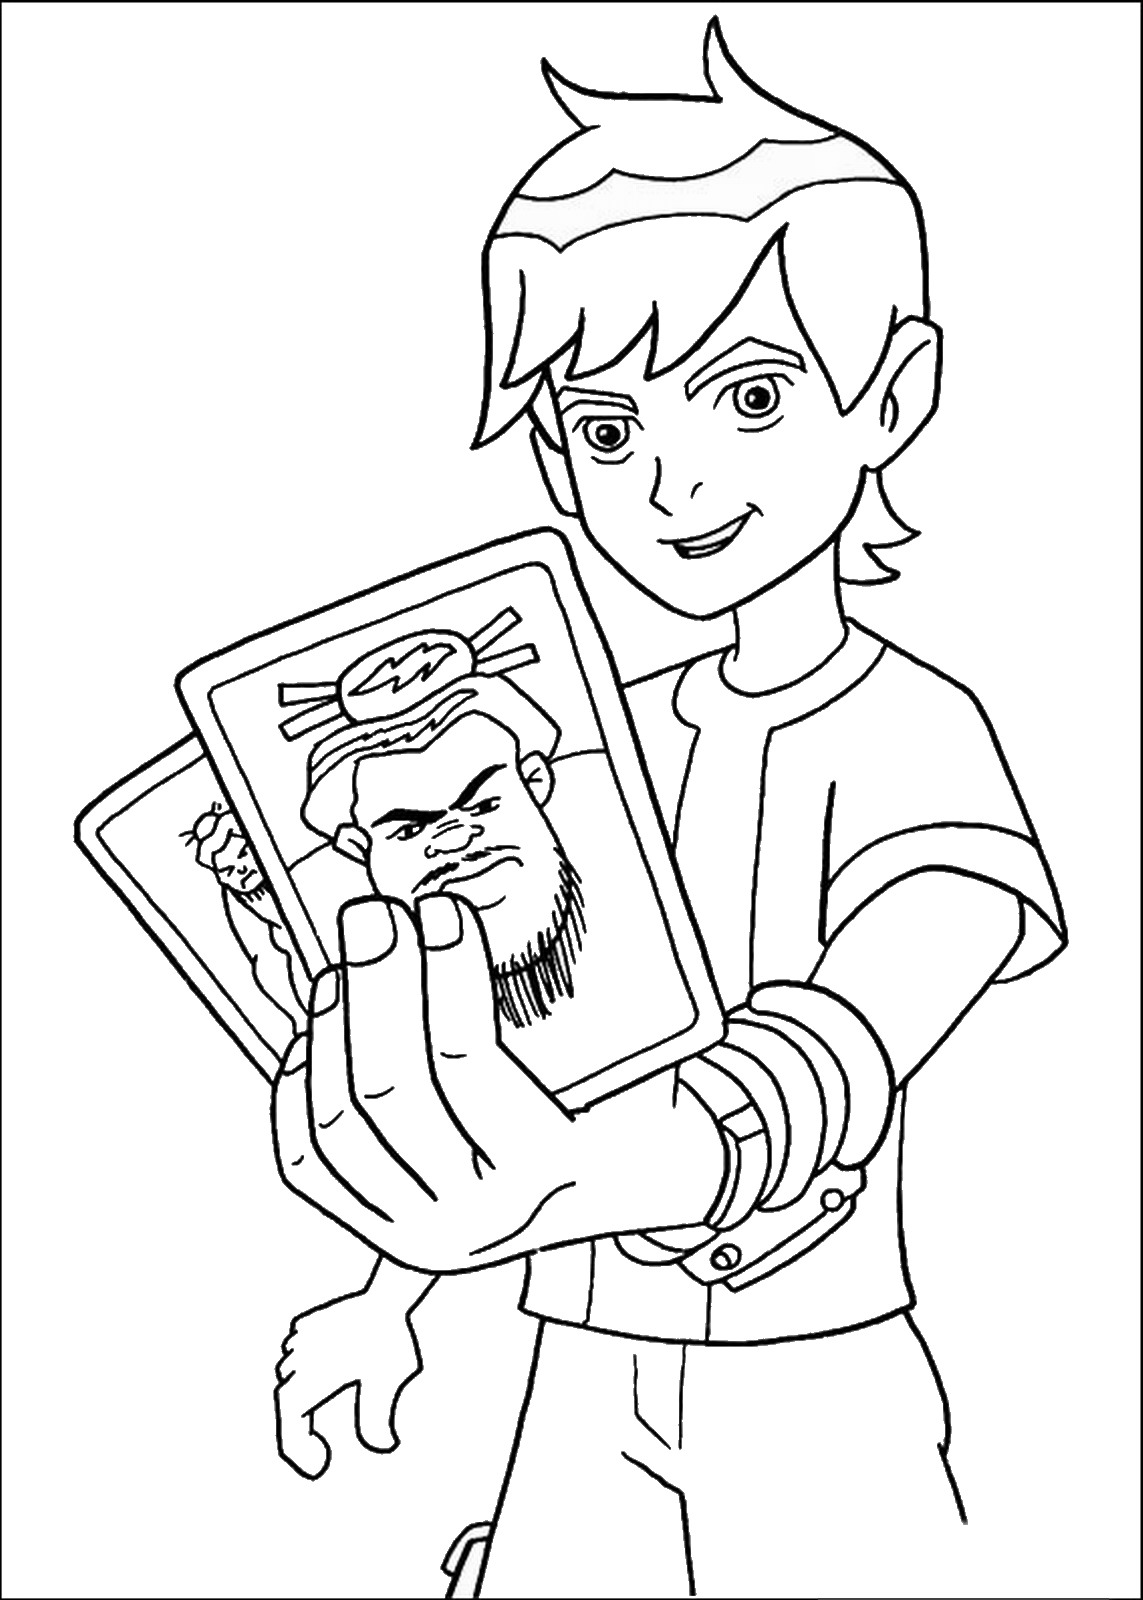 ben 10 coloring sheets best coloring pages site ben 10 coloring pages upgrade ben coloring sheets 10